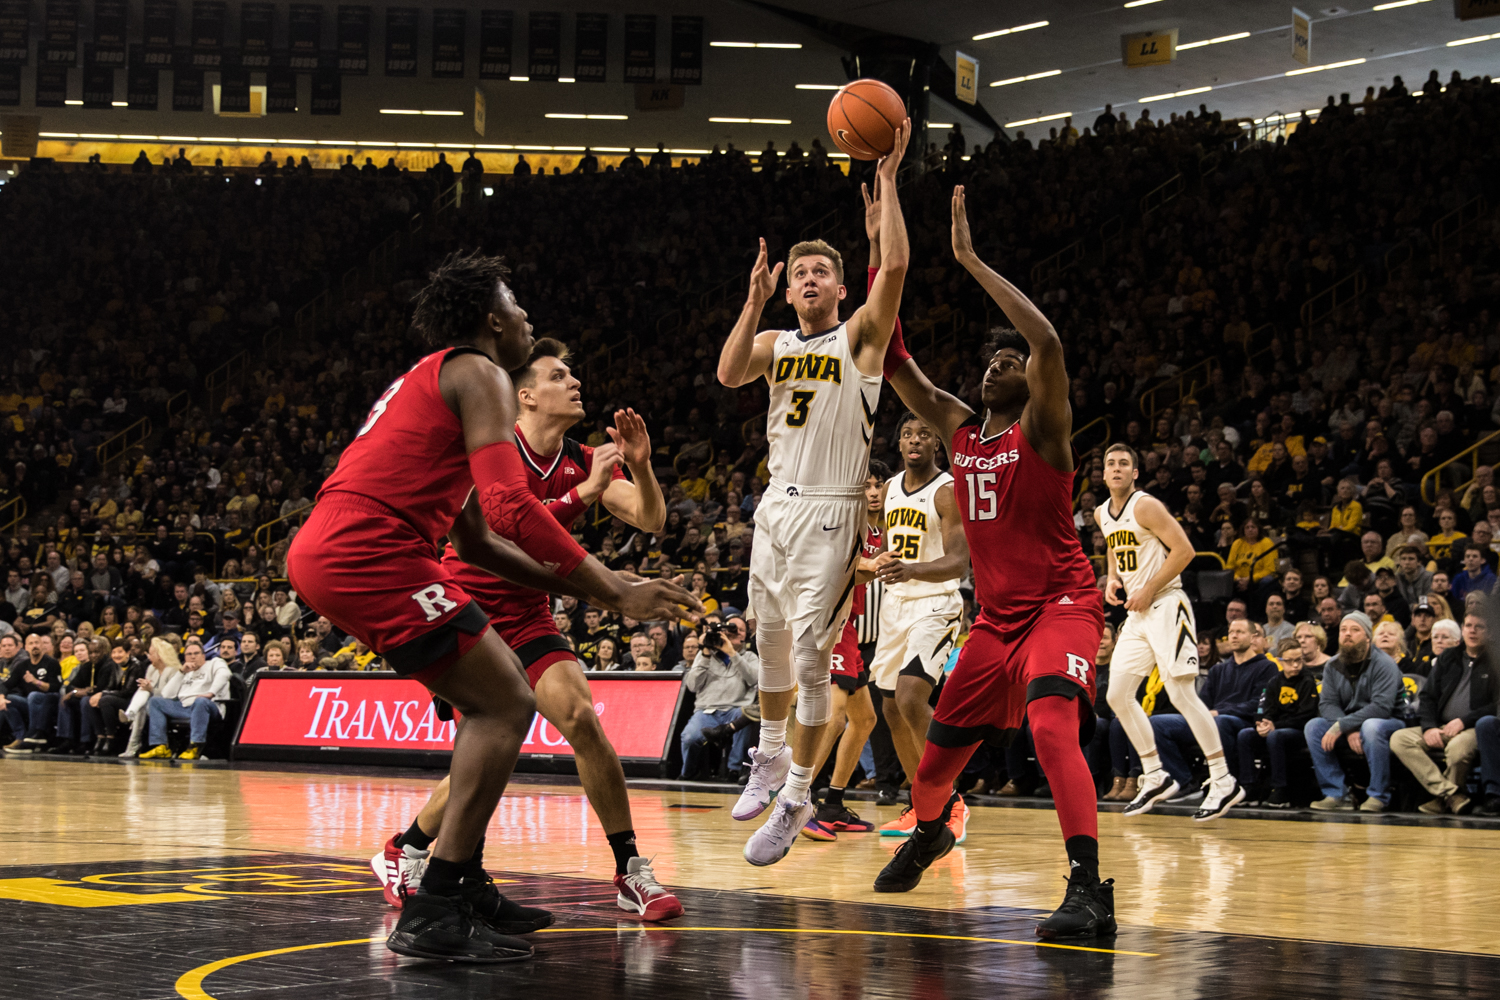 Iowa guard Jordan Bohannon lays the ball up during a men's basketball match between Iowa and Rutgers at Carver-Hawkeye Arena on Saturday, March 2, 2019. The Hawkeyes, celebrating senior night, fell to the Scarlet Knights, 86-72.